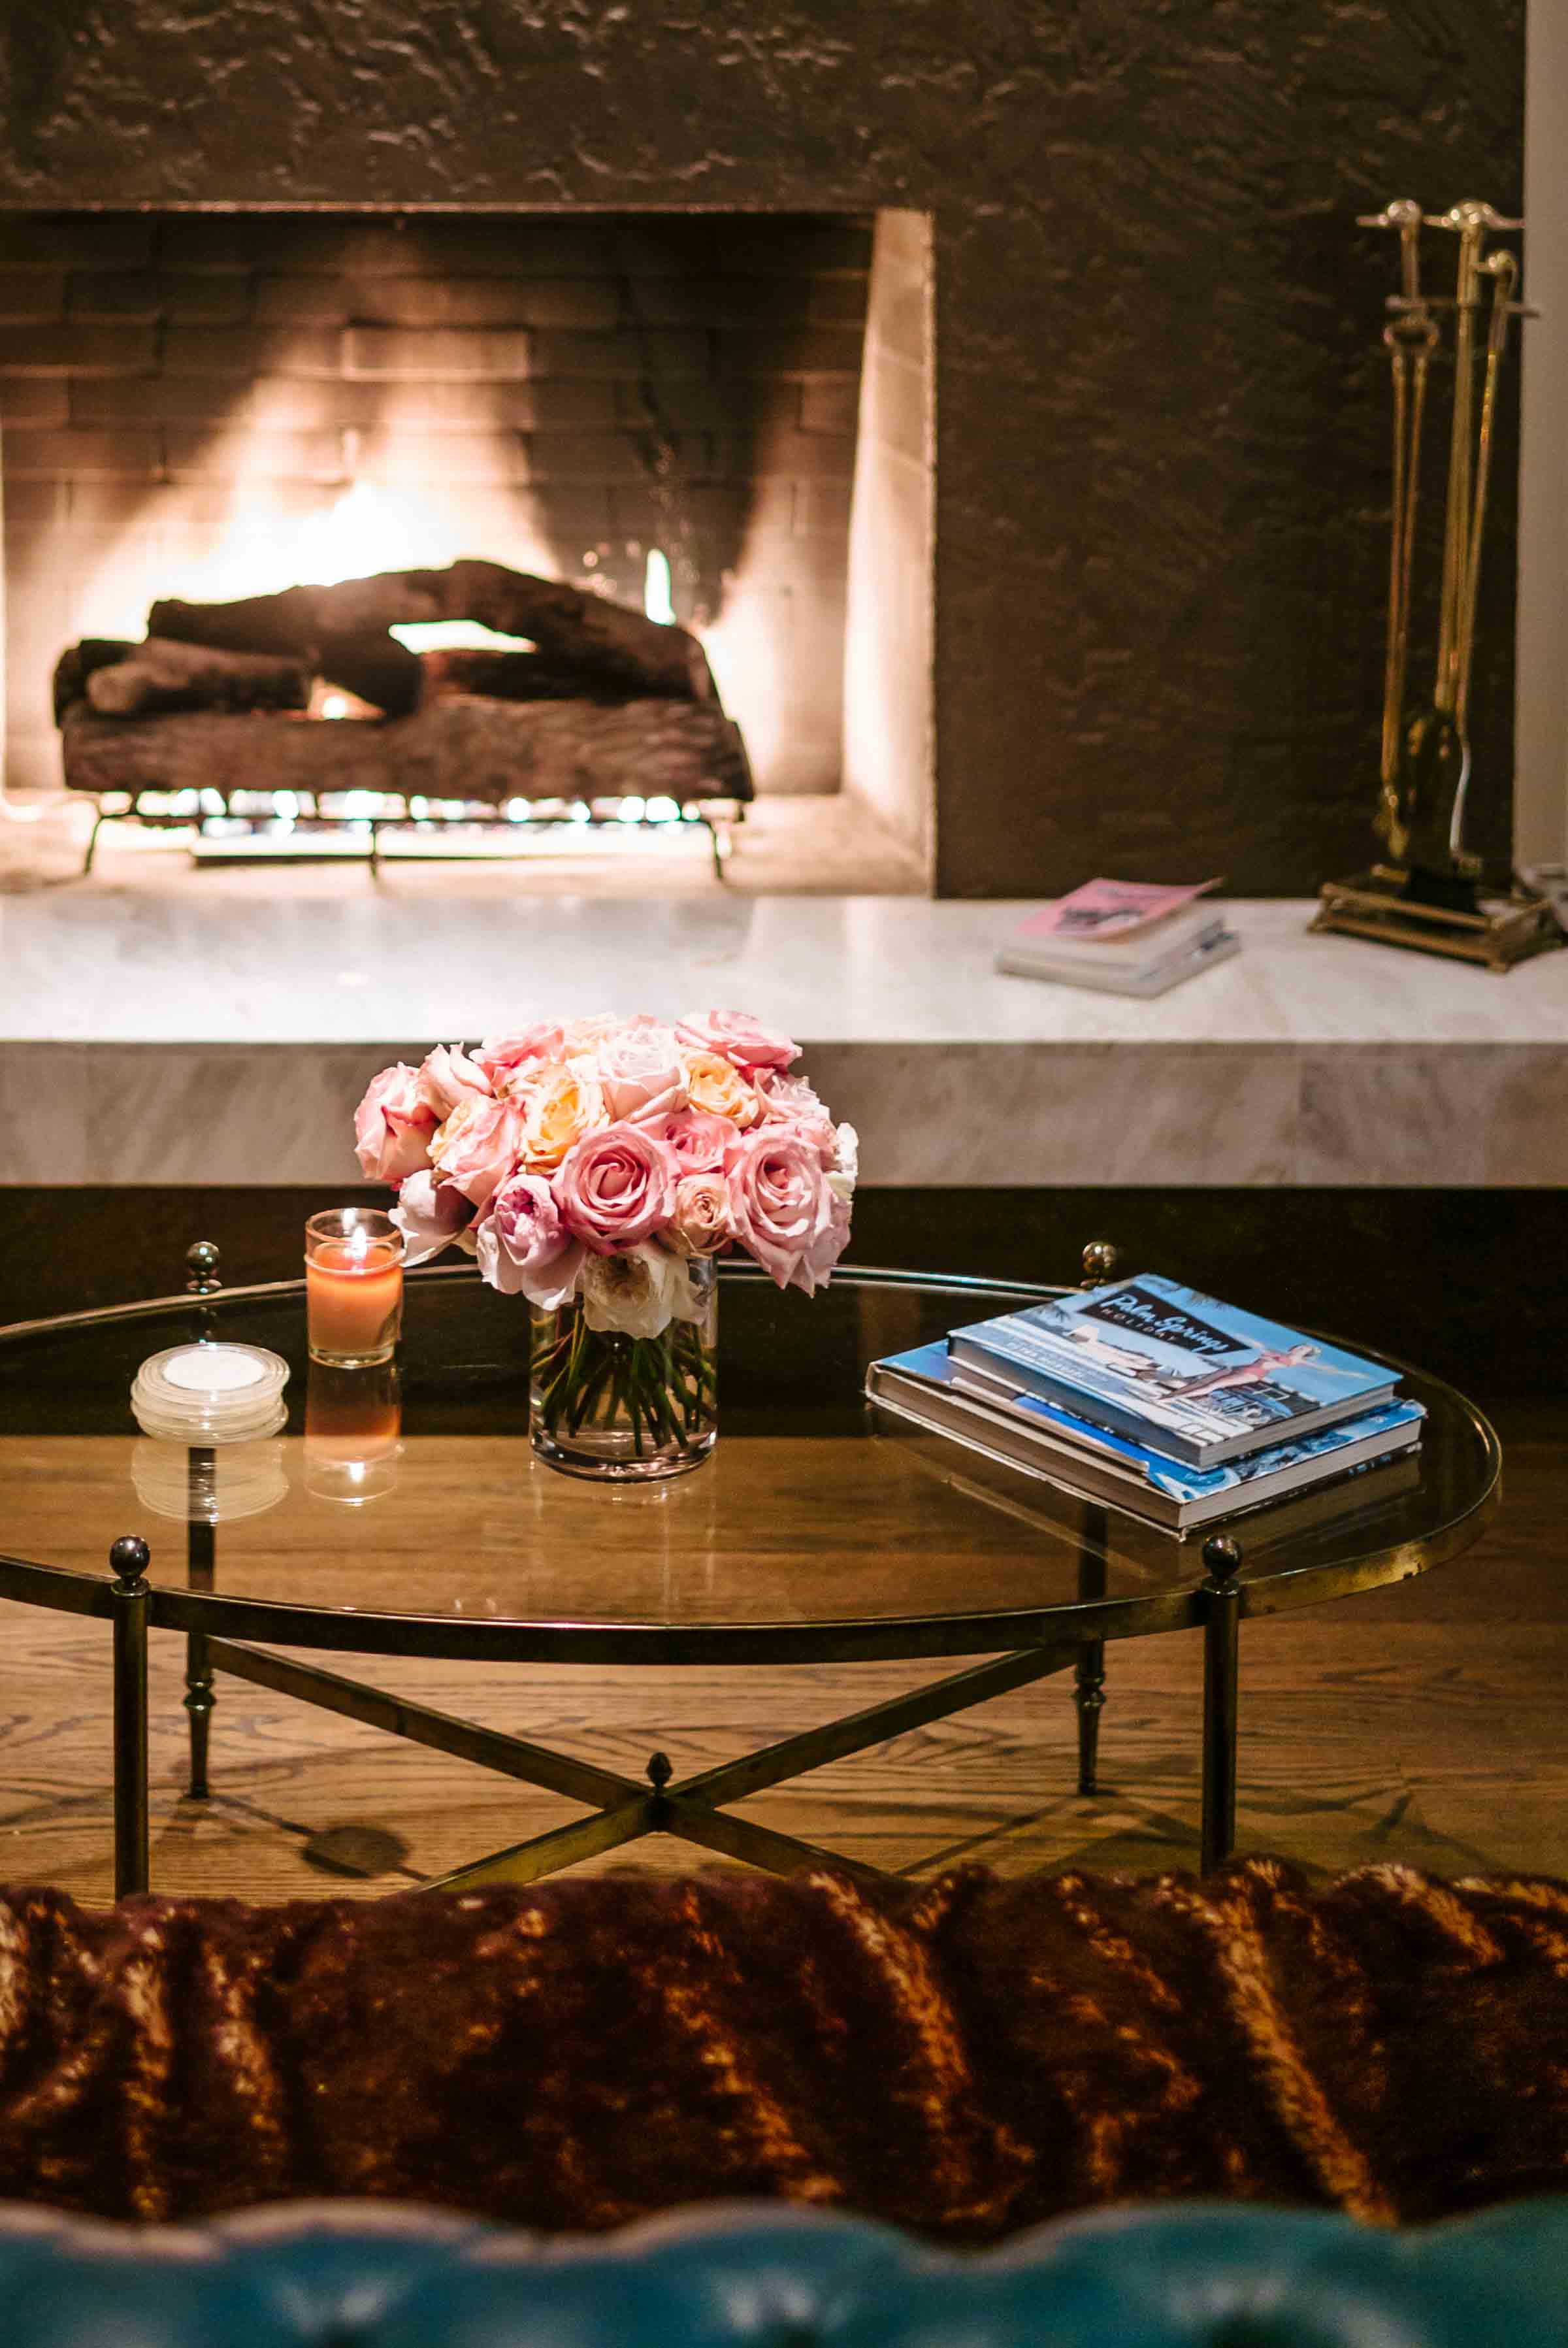 The Taste SF takes you behind the Instagram photo sensation That Pink Door in Palm Springs. Explore the interior decor in this mid-century Palm Springs house with working fireplaces